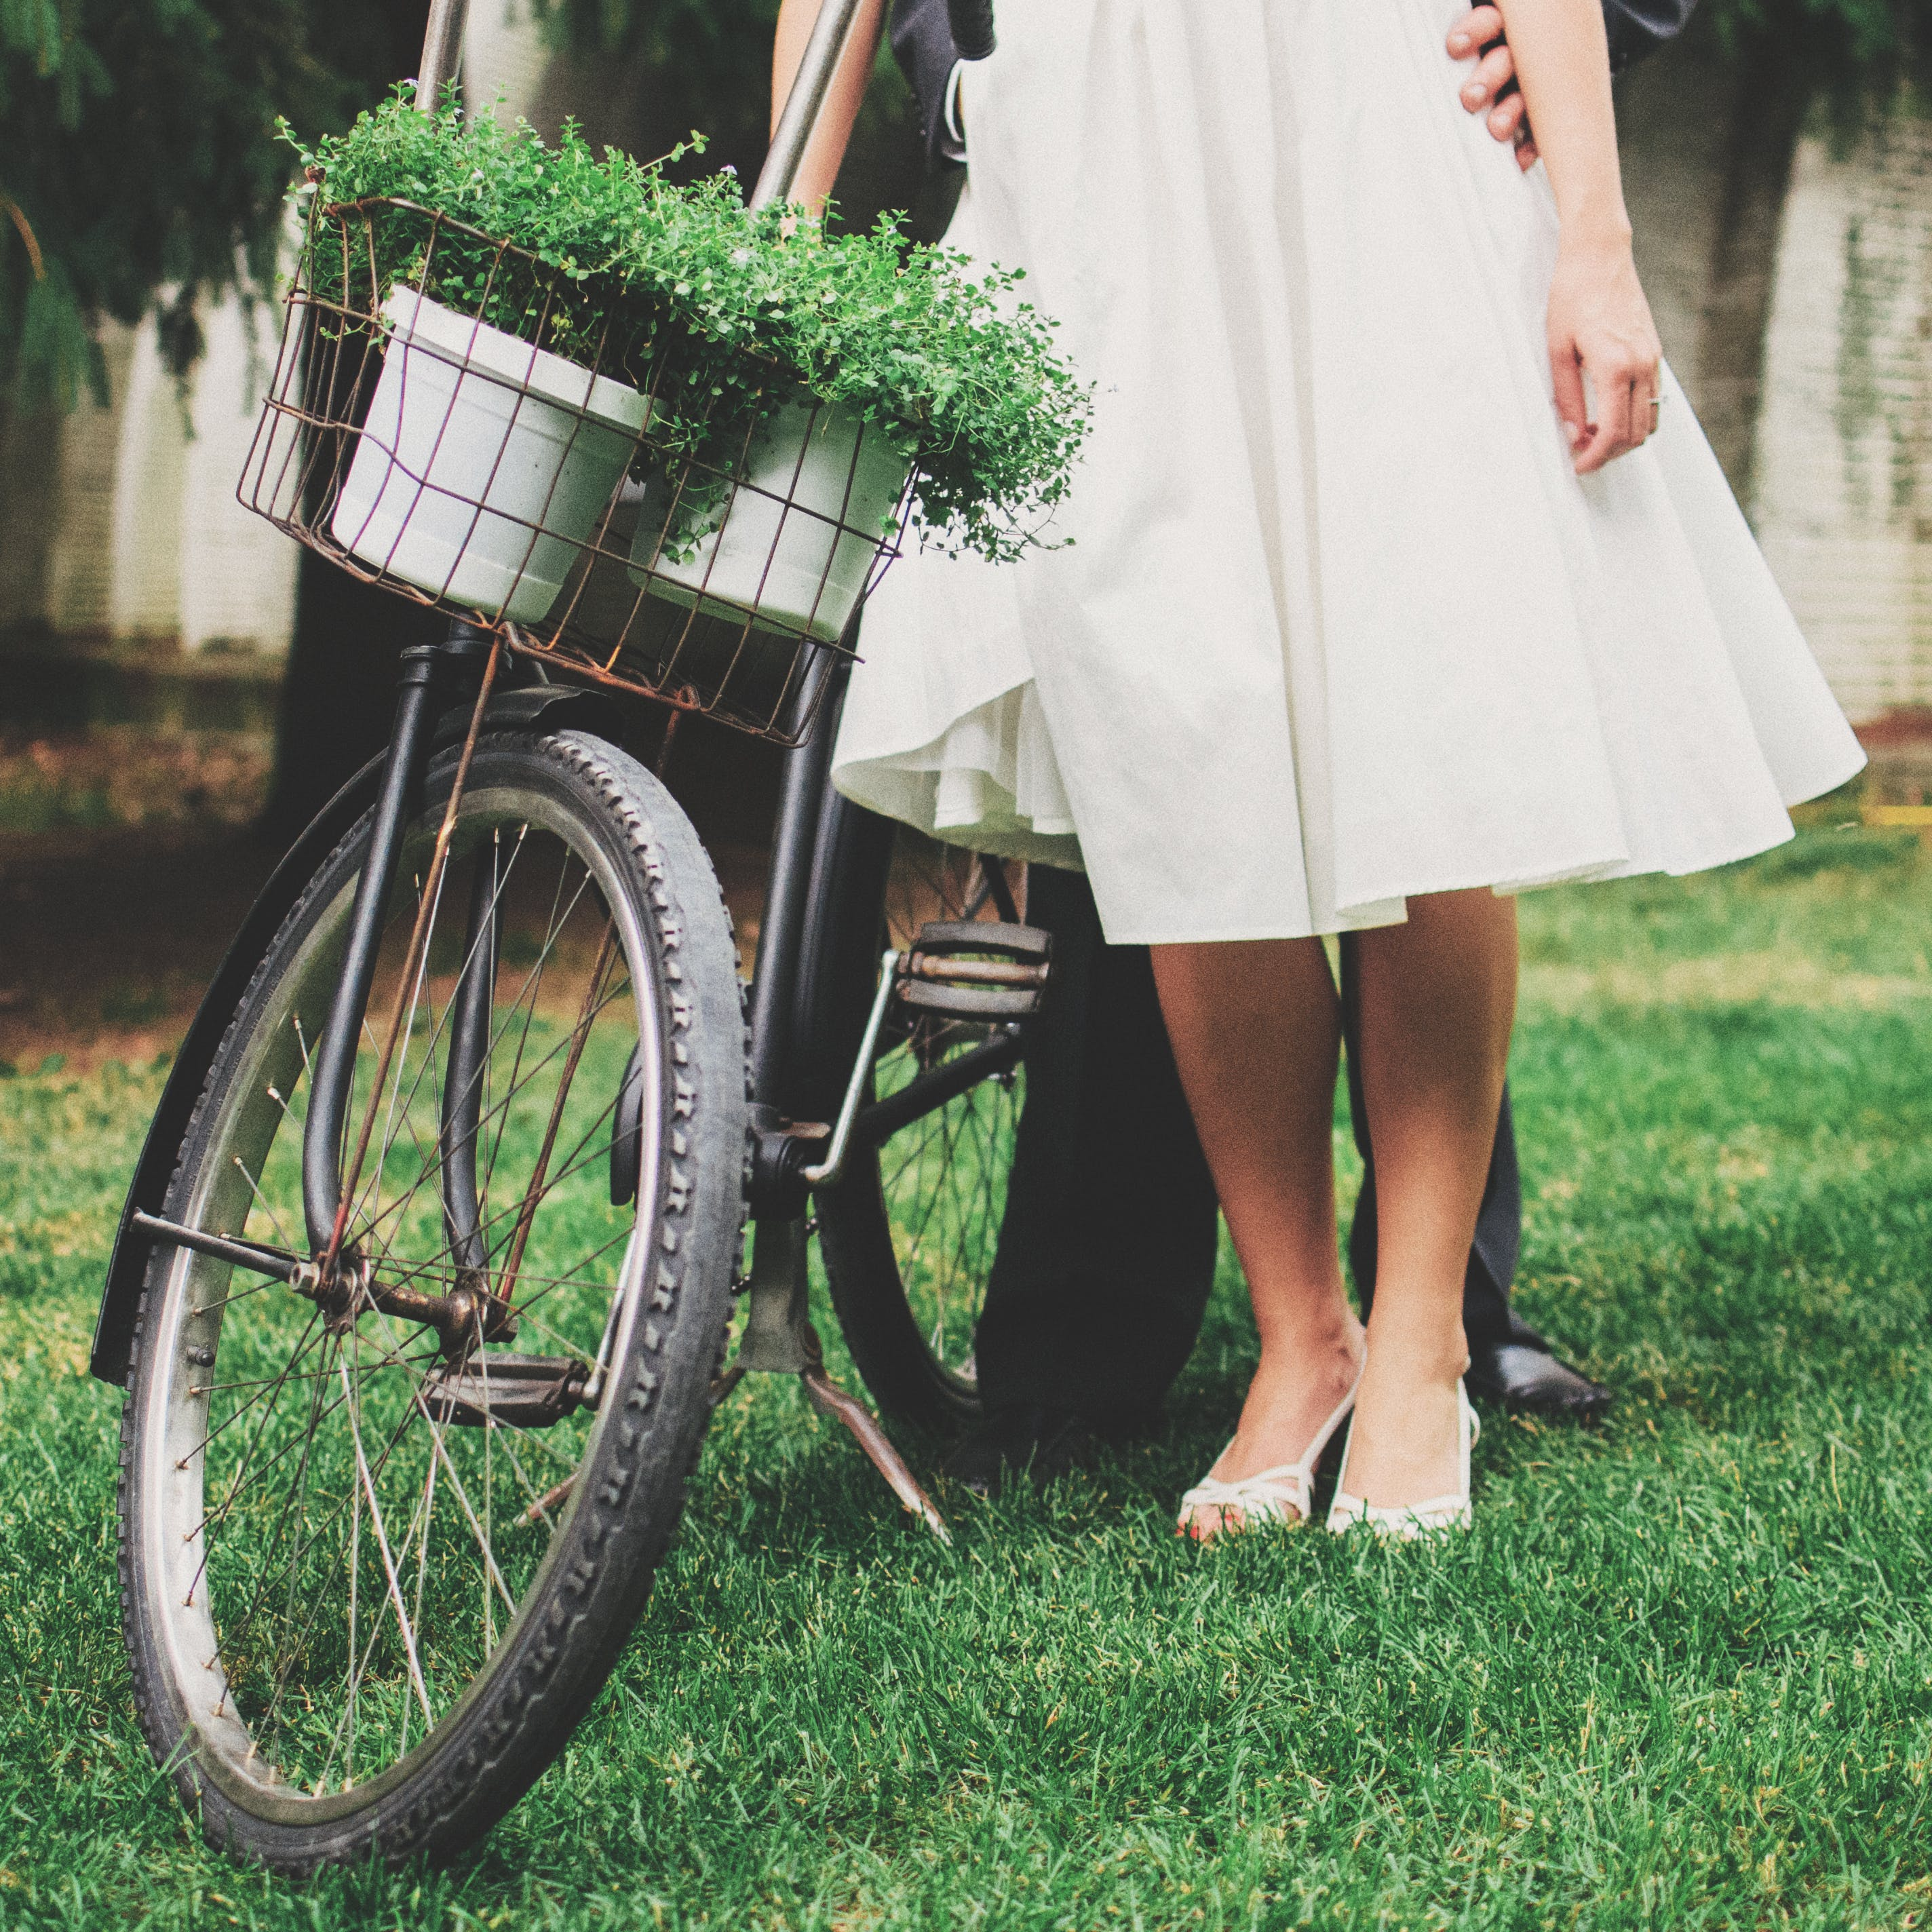 Woman and Man Standing Beside Bicycle